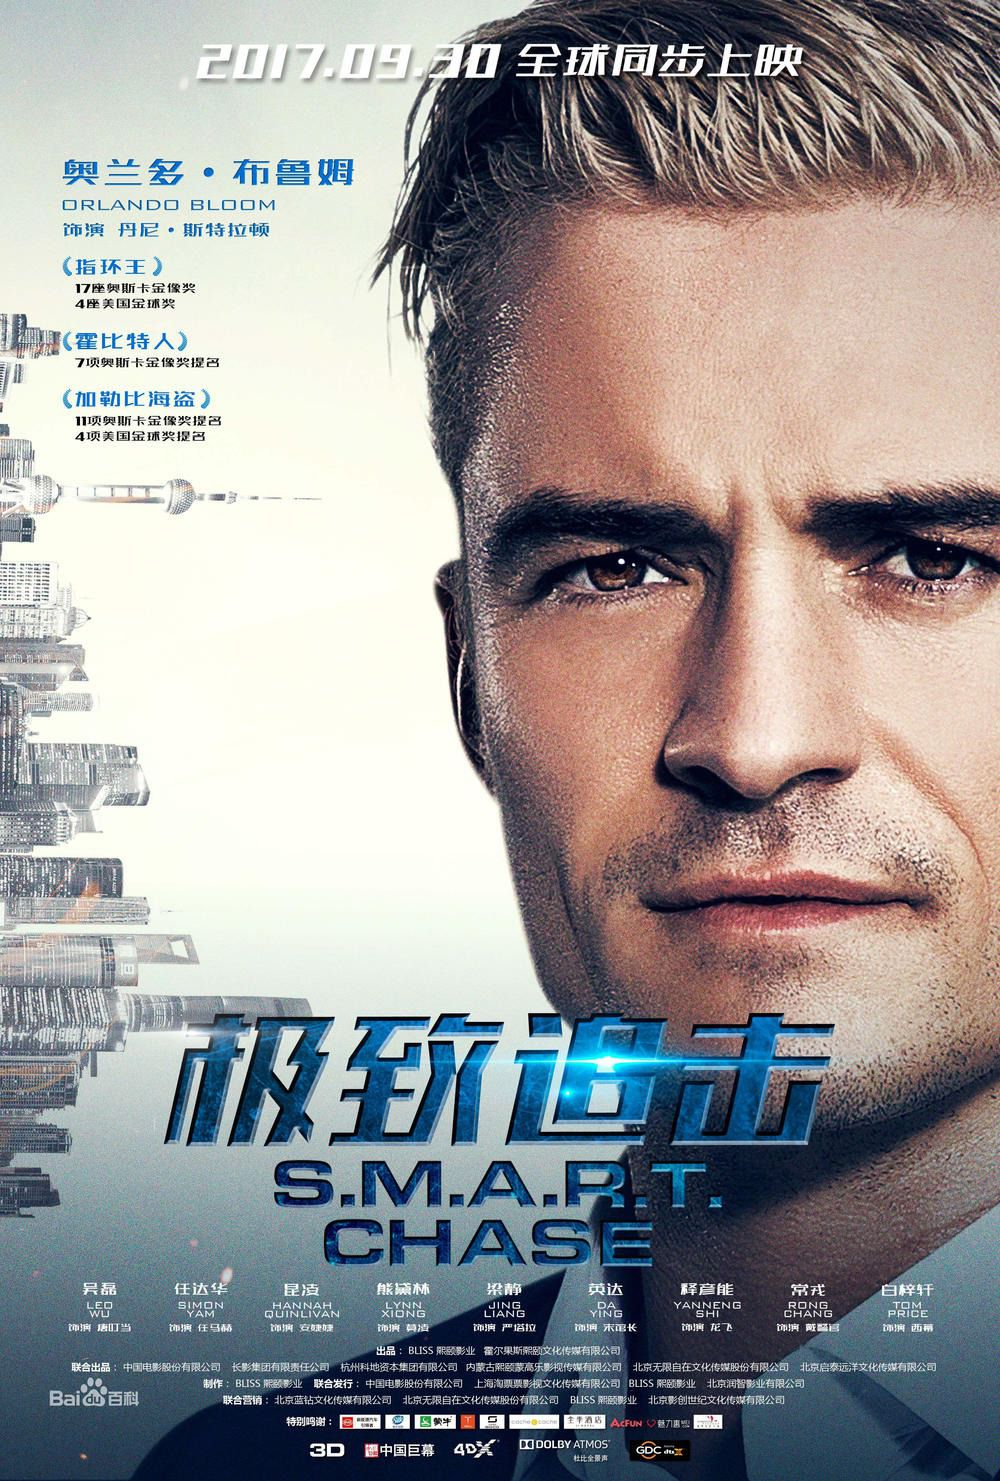 Smart Chase Fire and Earth - Cast: Orlando Bloom - film poster